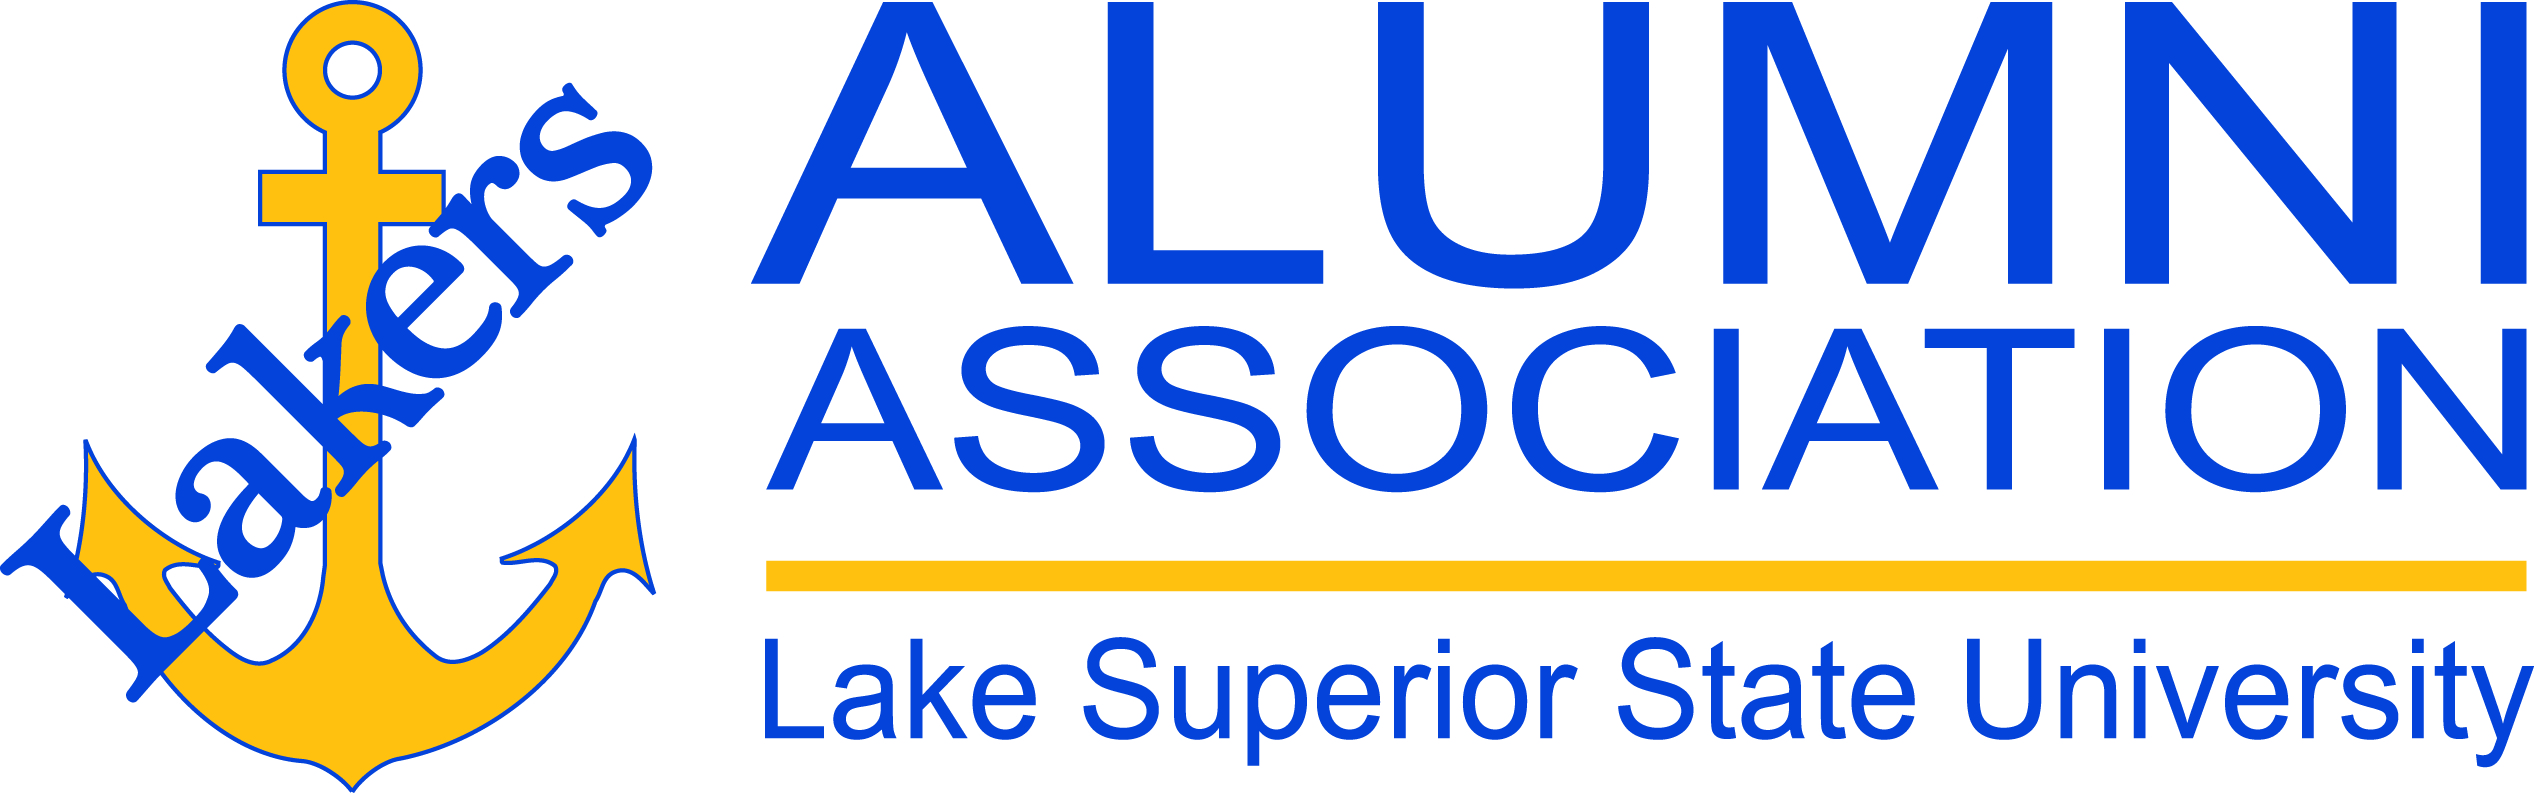 Lake Superior State University Alumni Association